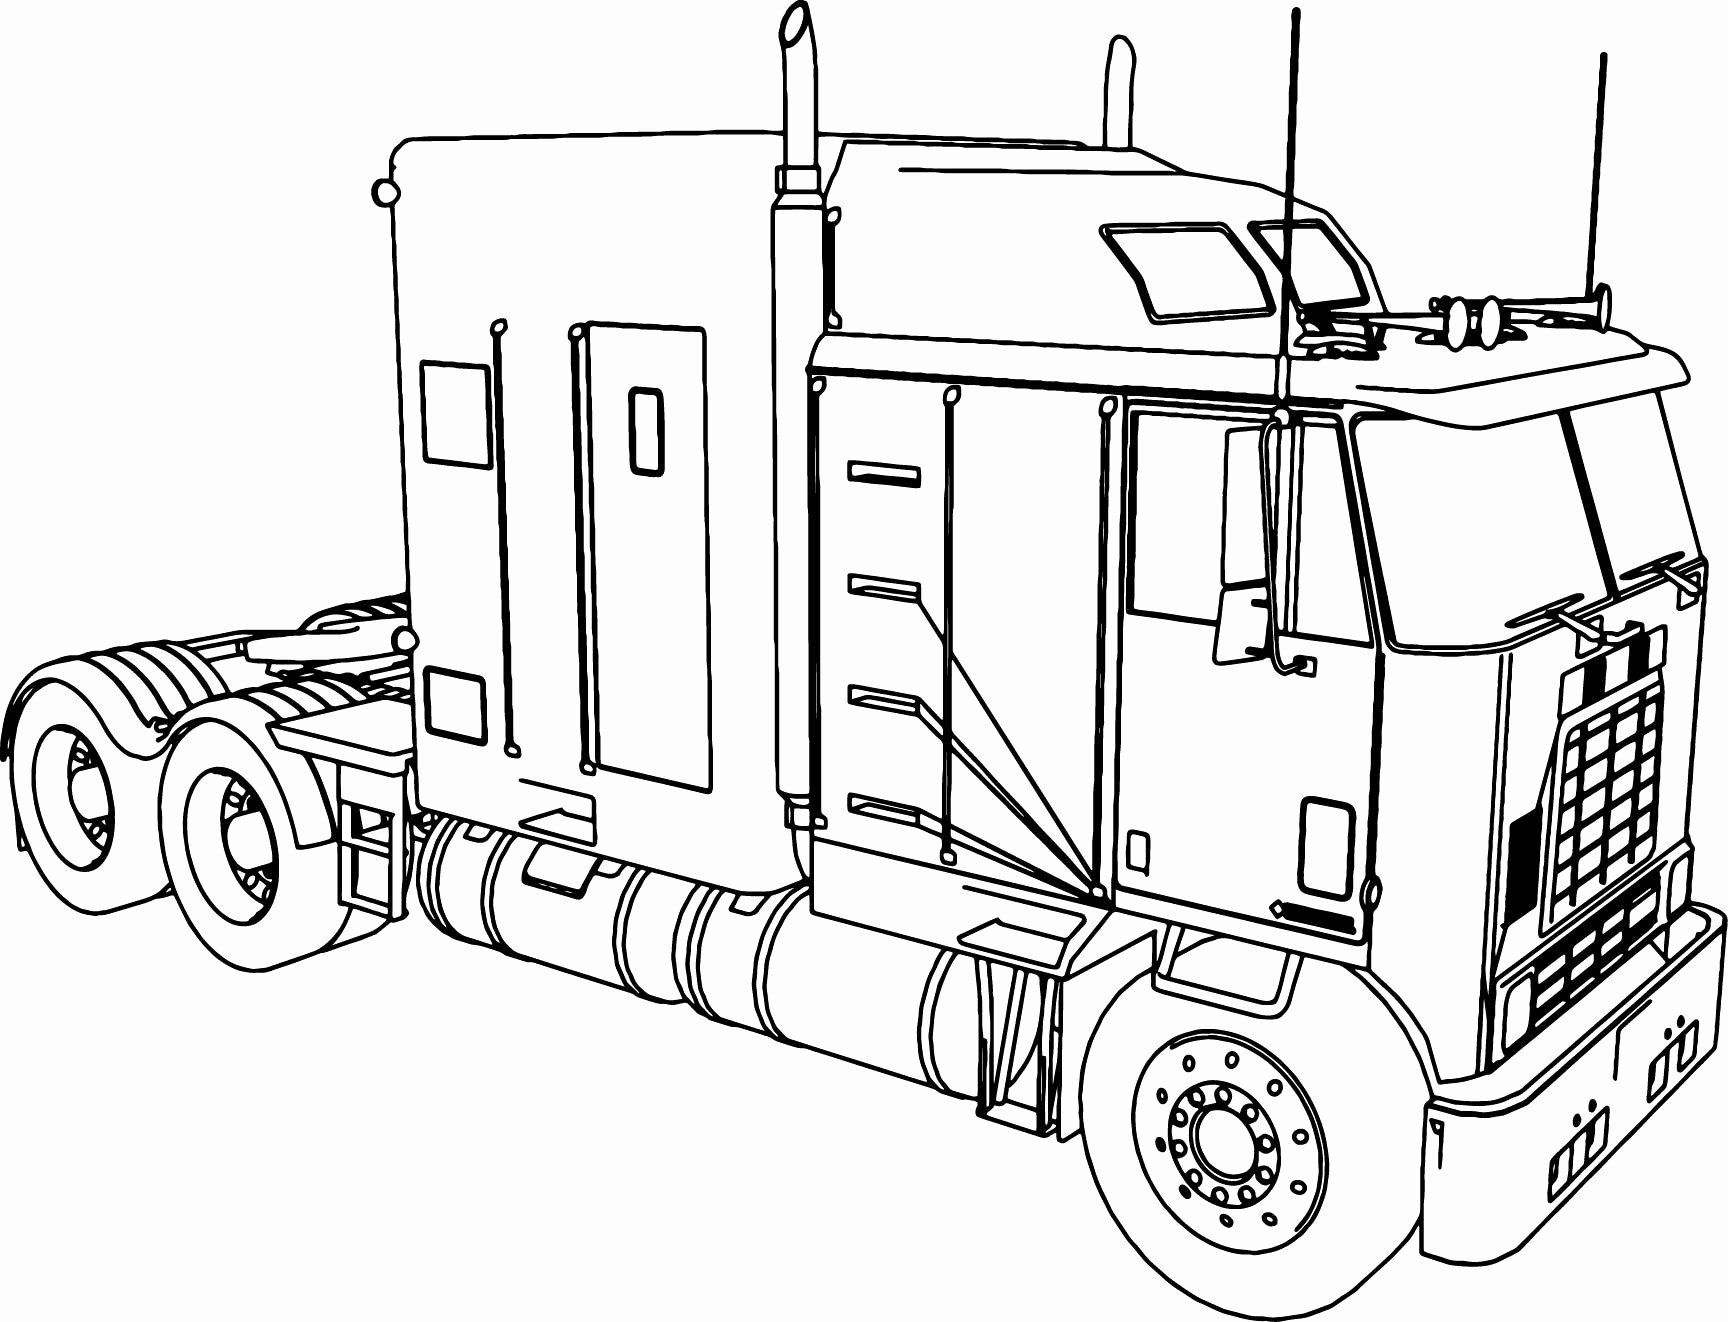 Transport Truck Coloring Pages Fresh Semi Truck Coloring Pages Elegant Police Truck Co Truck Coloring Pages Monster Truck Coloring Pages Tractor Coloring Pages